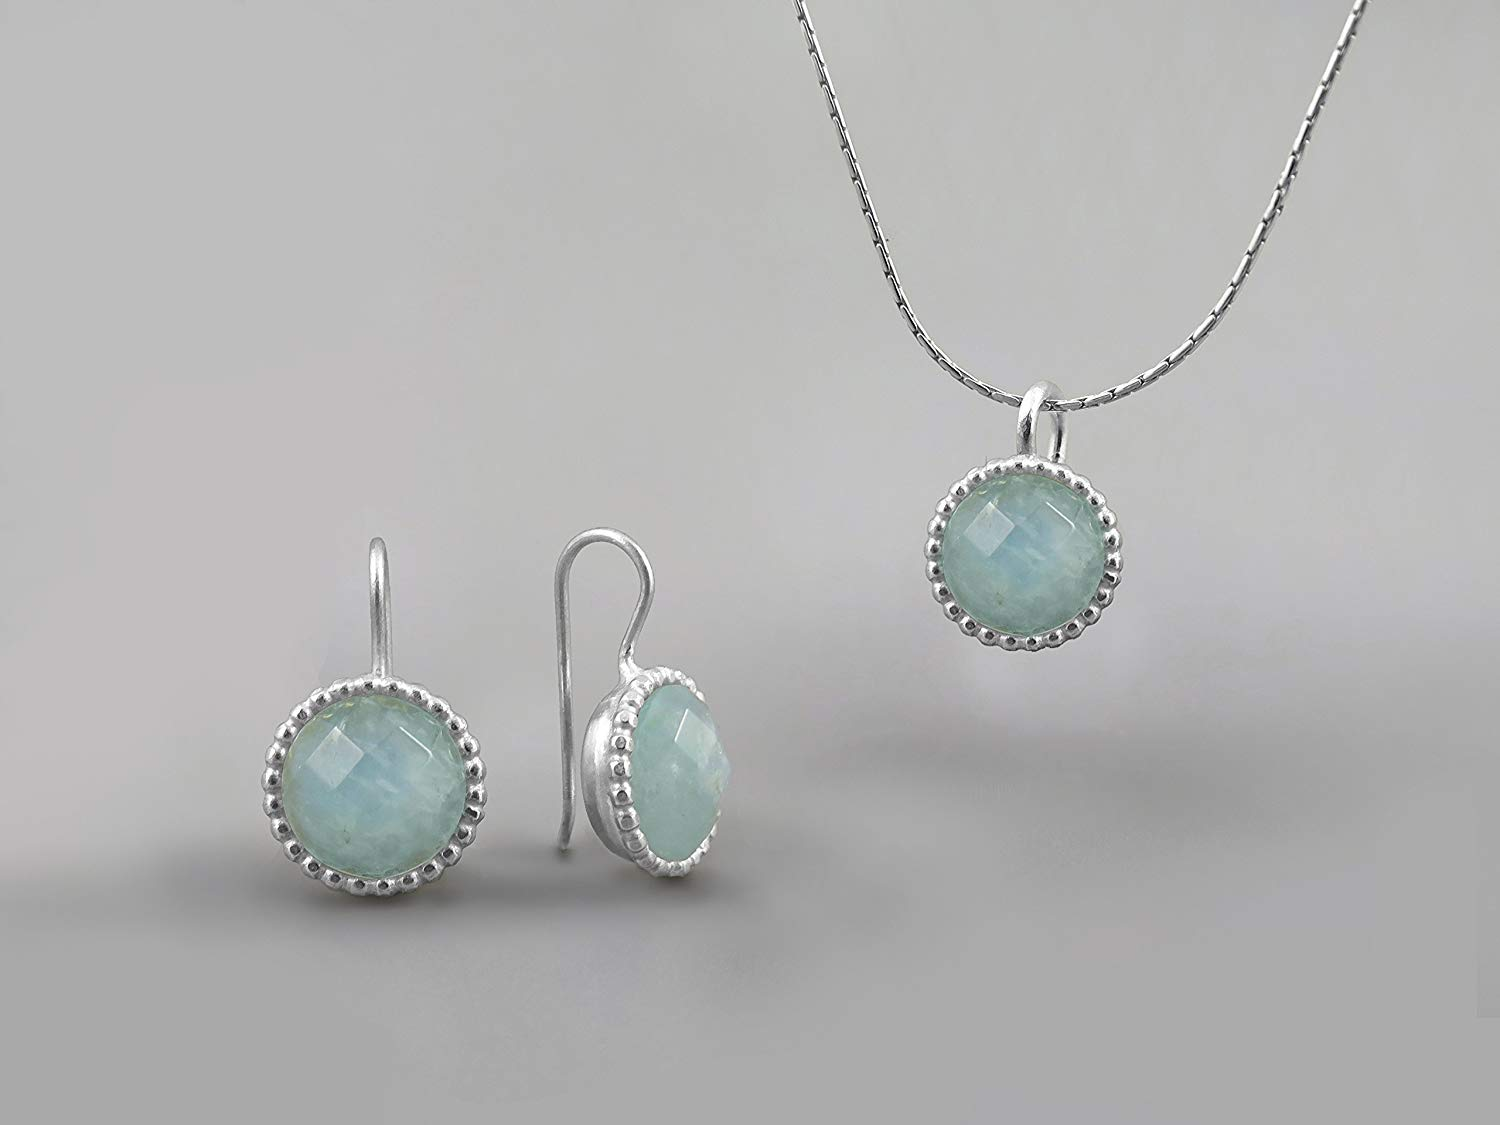 10mm Blue Green Aquamarine Gemstone Round Jewelry Set For Women .925 Sterling Silver March Birthstone Jewelry Aquamarine Necklace Pendant Earring Set Elegant Gift for Women Aquamarine Jewelry For Wife